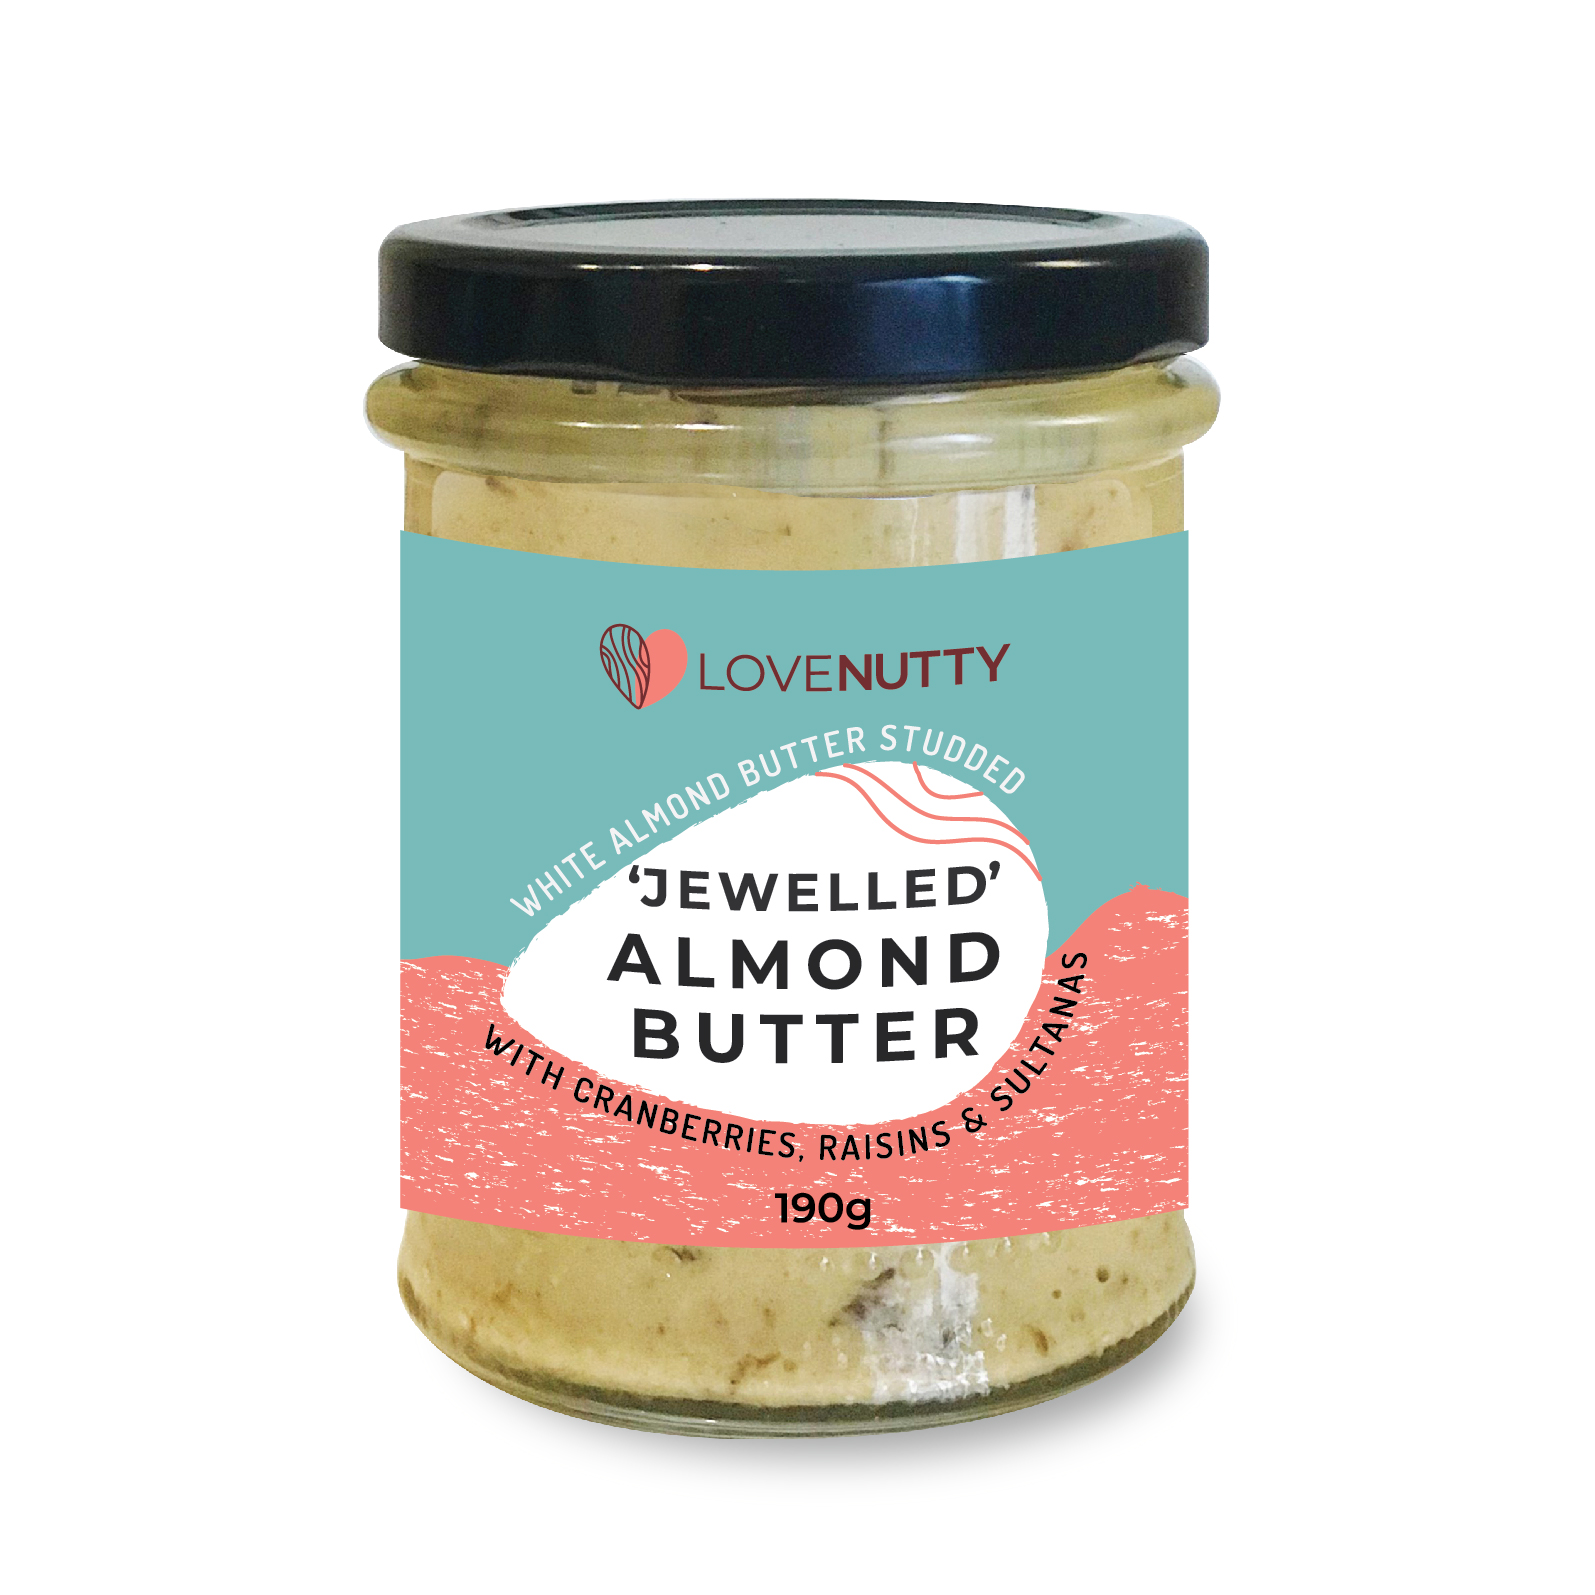 Jewelled almond butter image